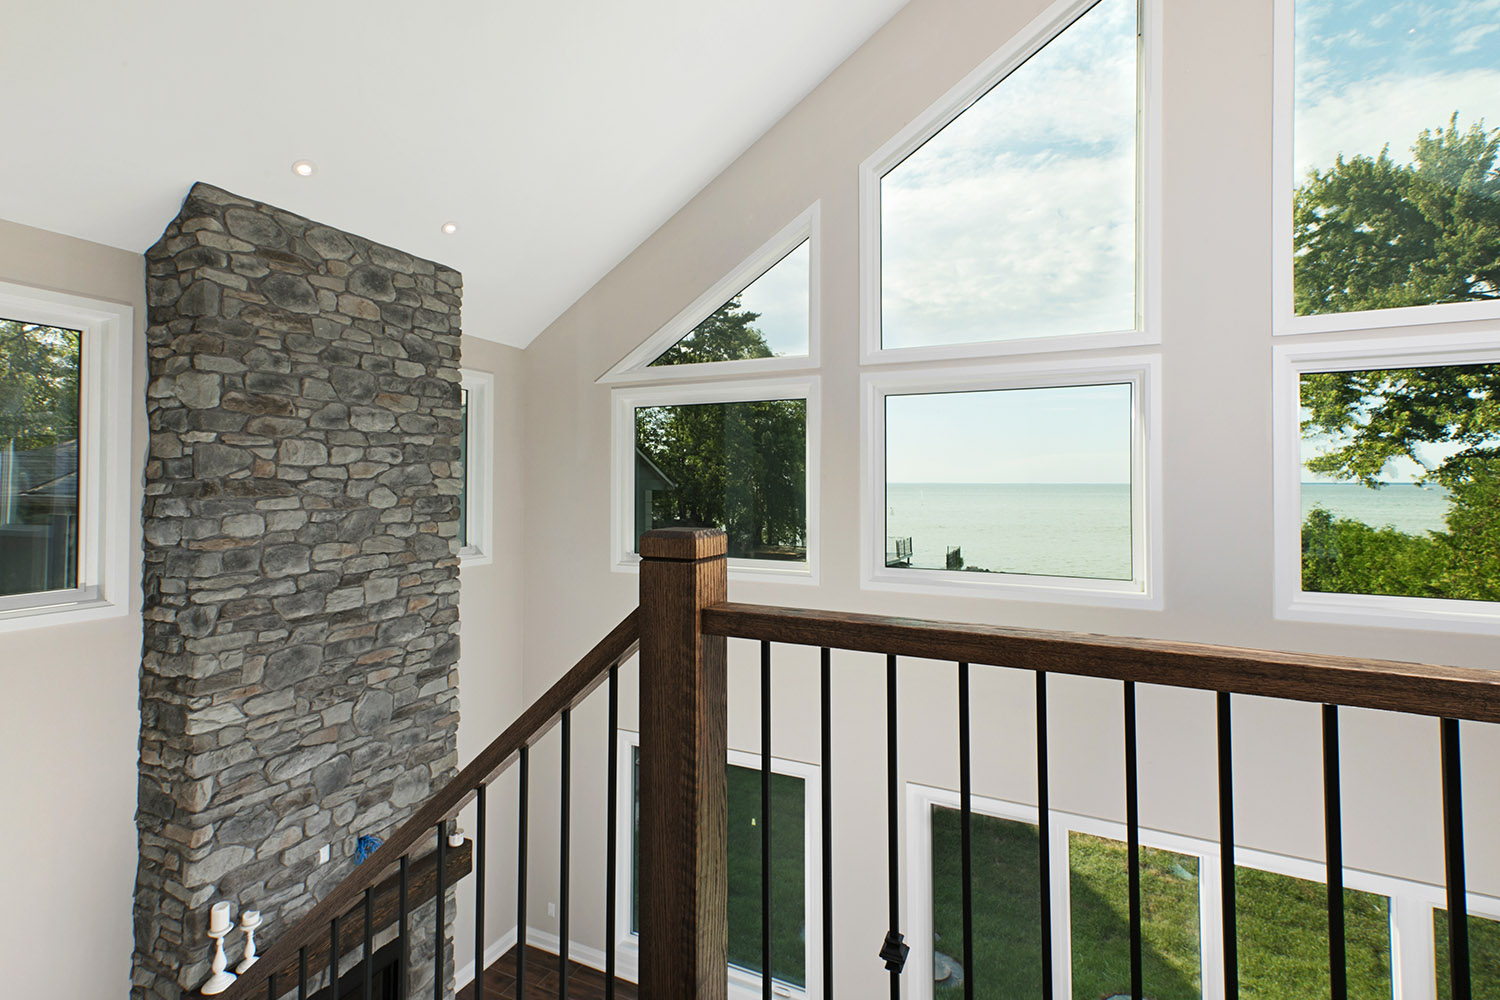 pefferlaw_lakefront_two_story_custom_home--construct_conserve_30.jpg